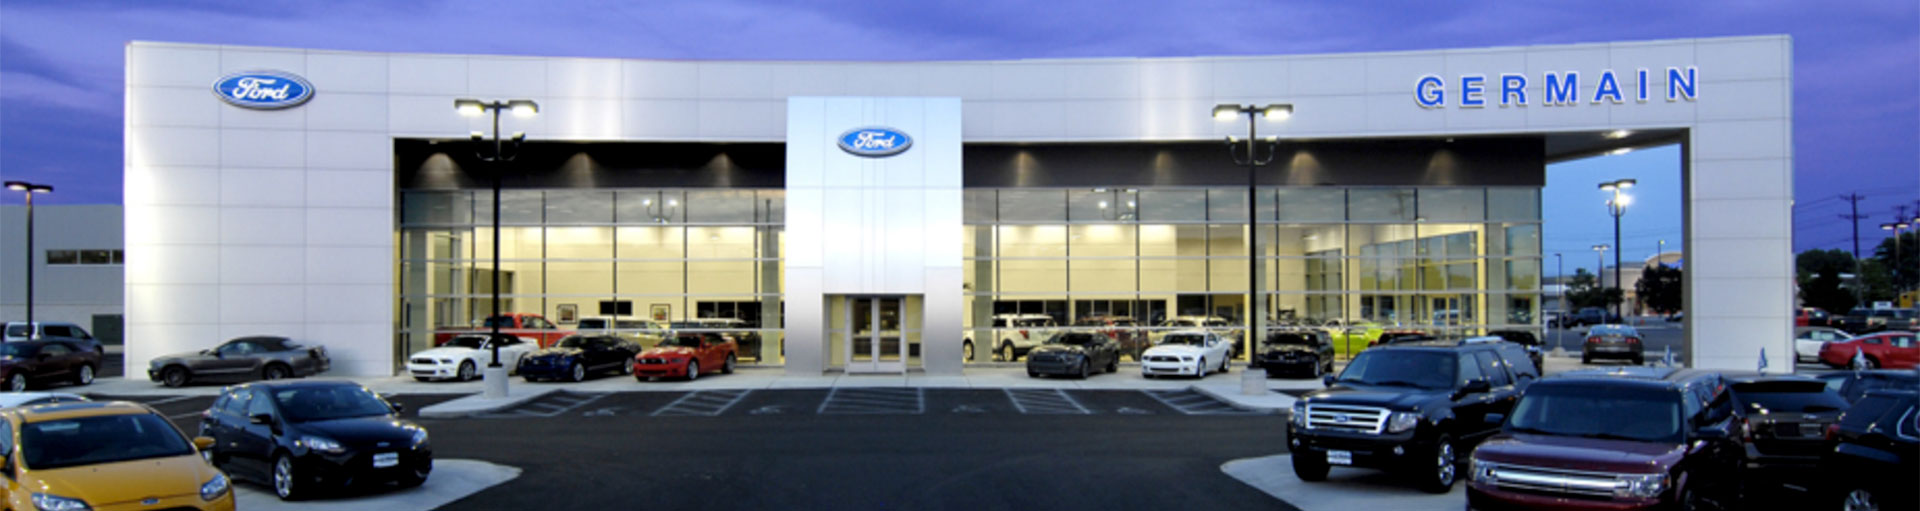 Germain Ford Accessories Department